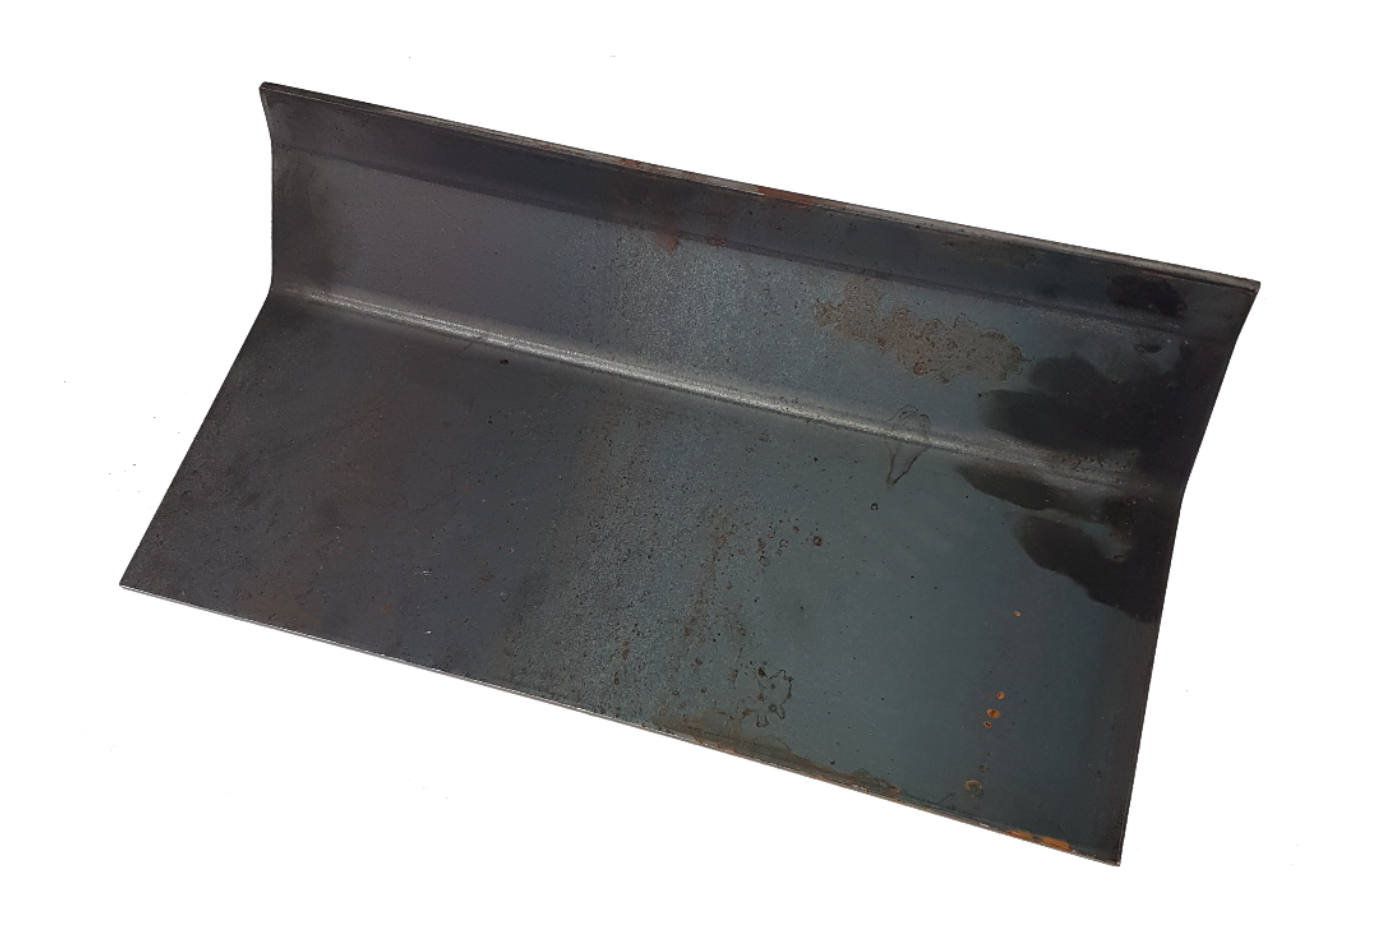 A replacement Baffle suitable for Stovax View 5 MK2 stoves.